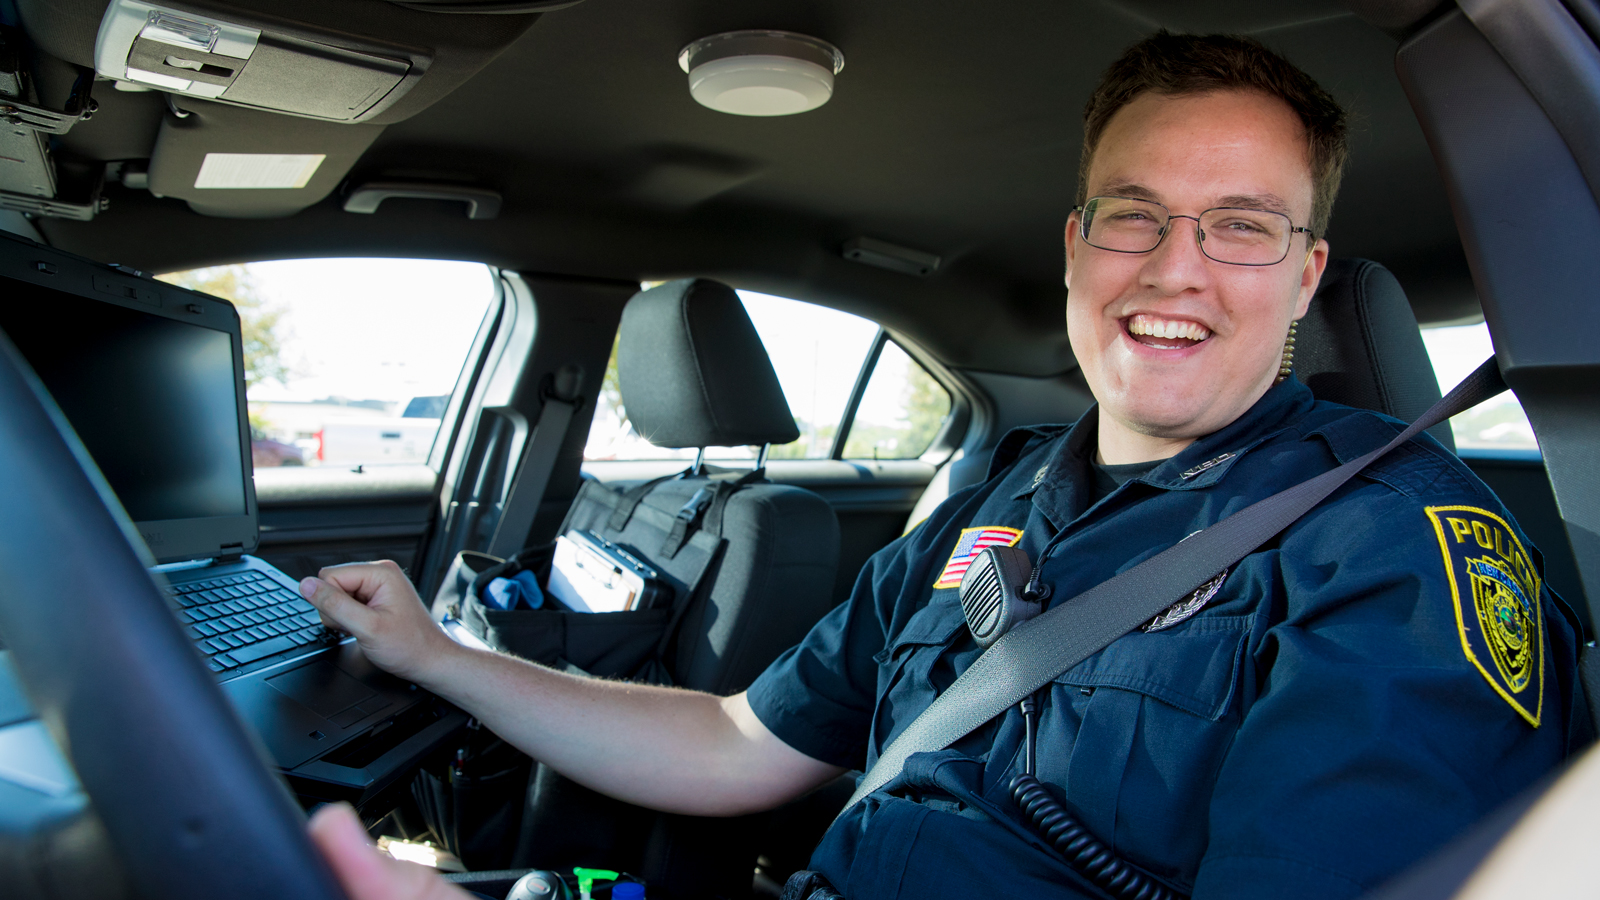 Ball State criminal justice graduate in uniform as police officer